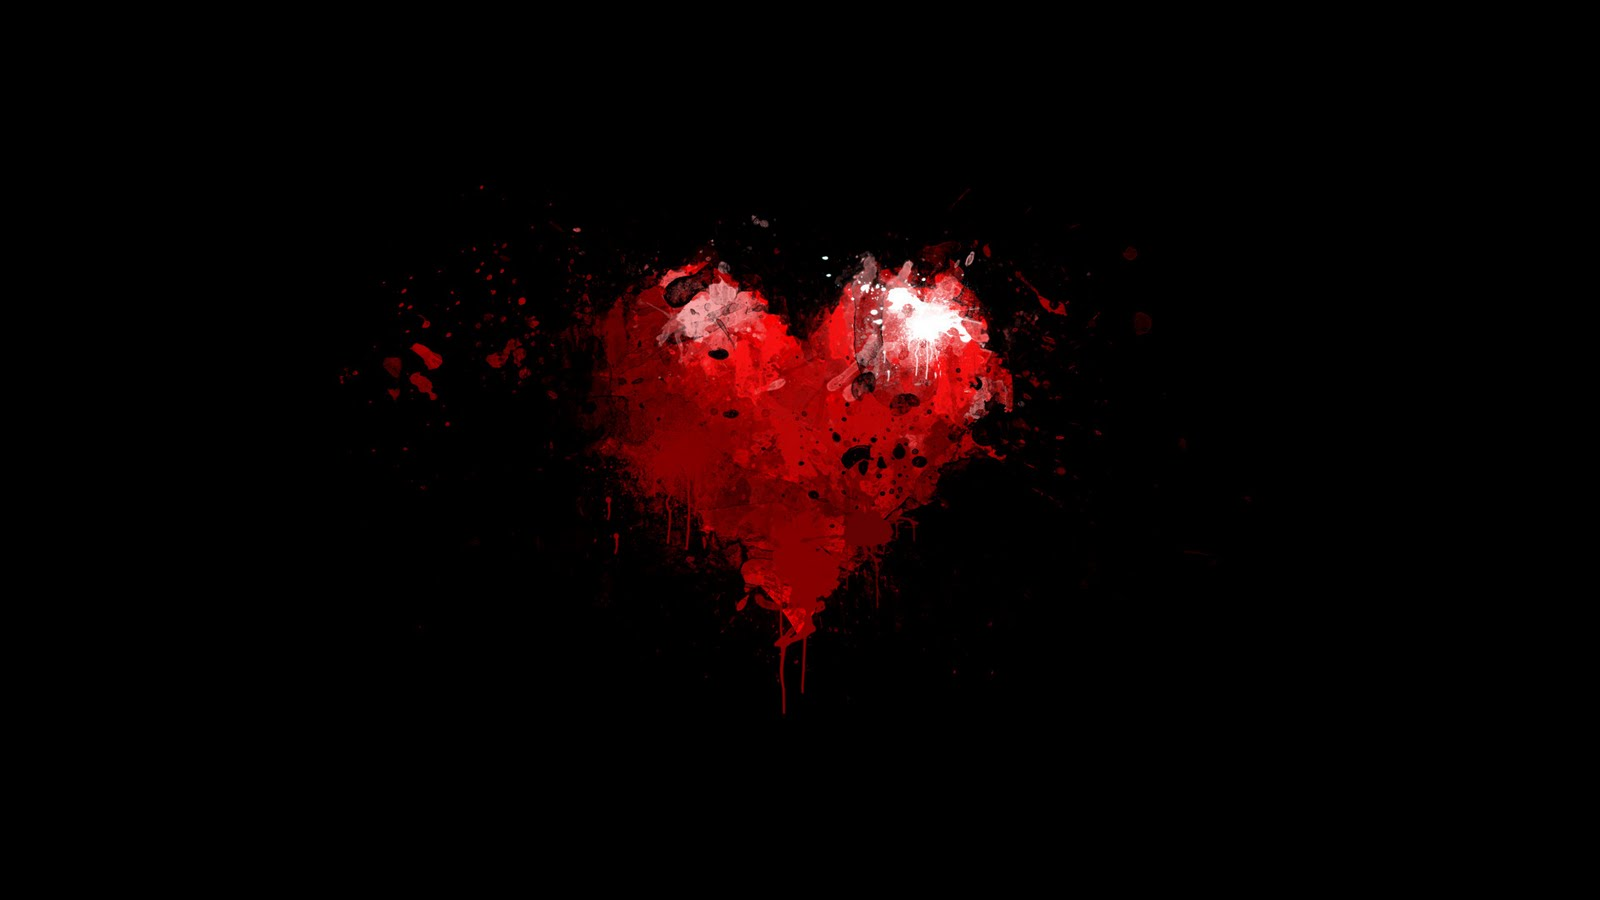 Black Red Love Wallpaper : 13 Awesome Black and Red Wallpapers HD - The Nology